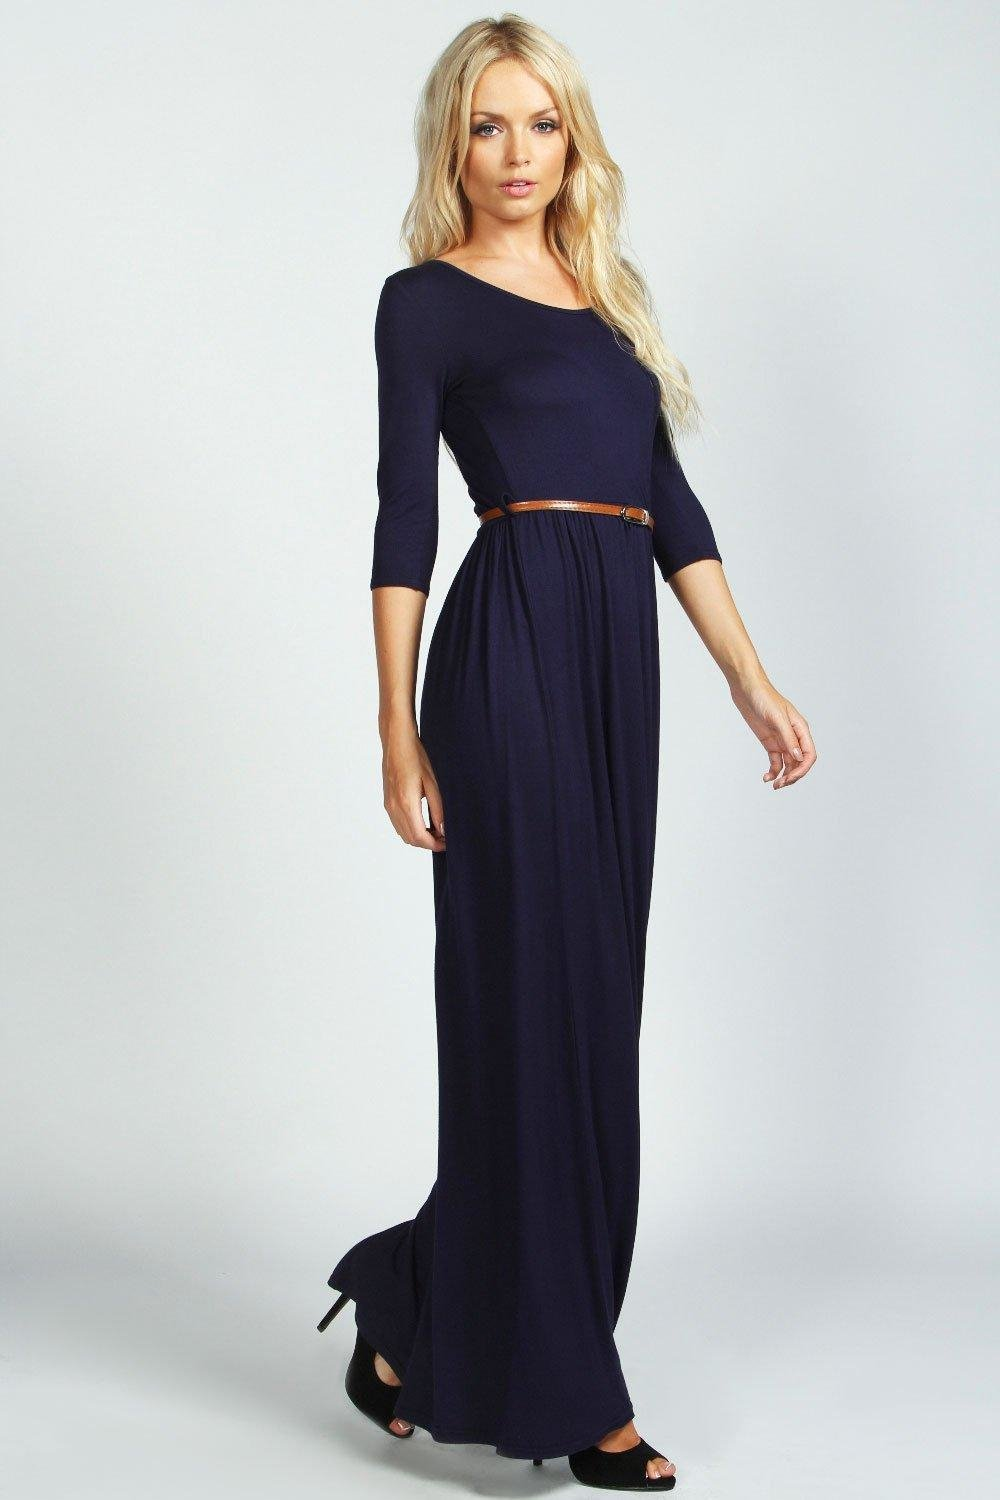 Boohoo Sophia Scoop Neck Elasticated Waist Maxi Dress in ...